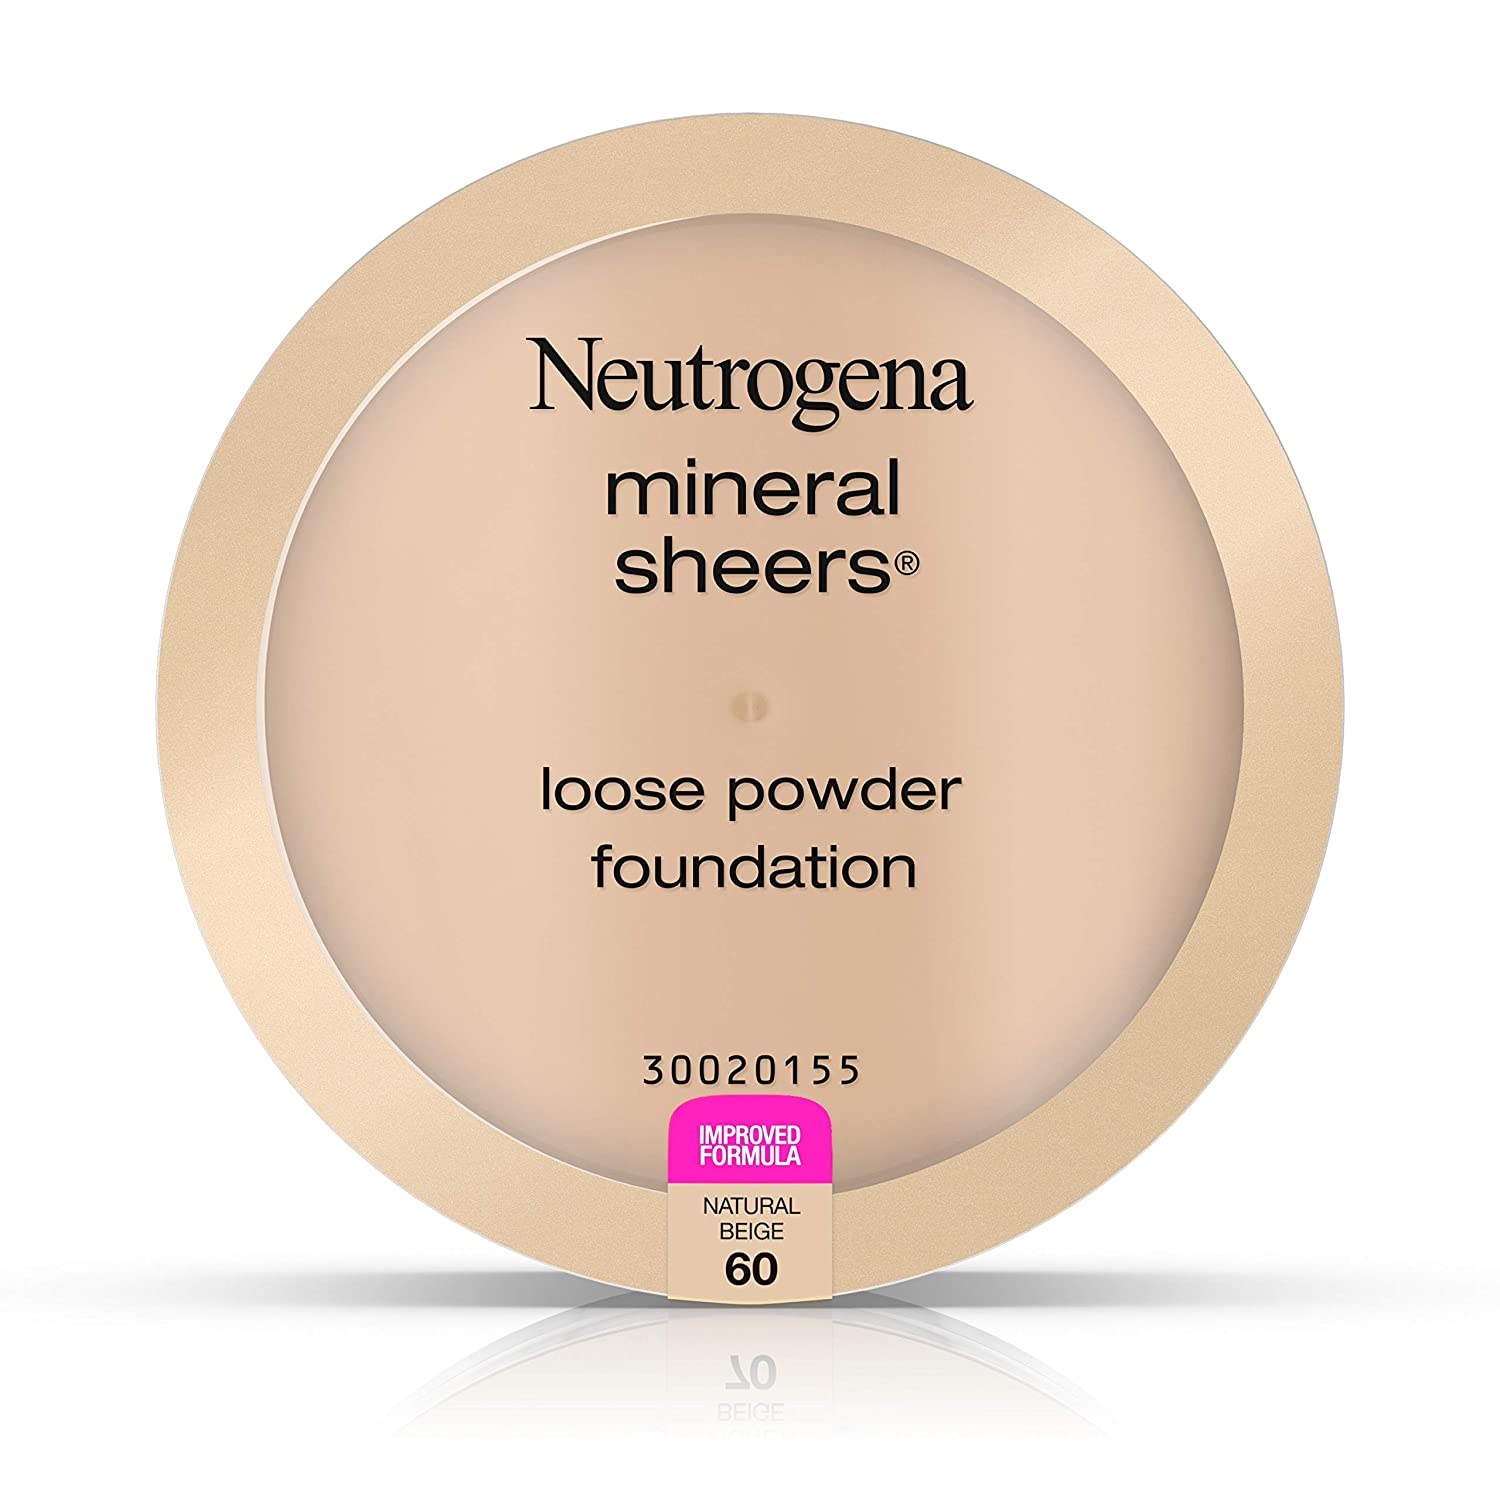 Neutrogena Mineral Sheers Lightweight Loose Powder Makeup Foundation with Vitamins A, C, & E, Sheer to Medium Buildable Coverage